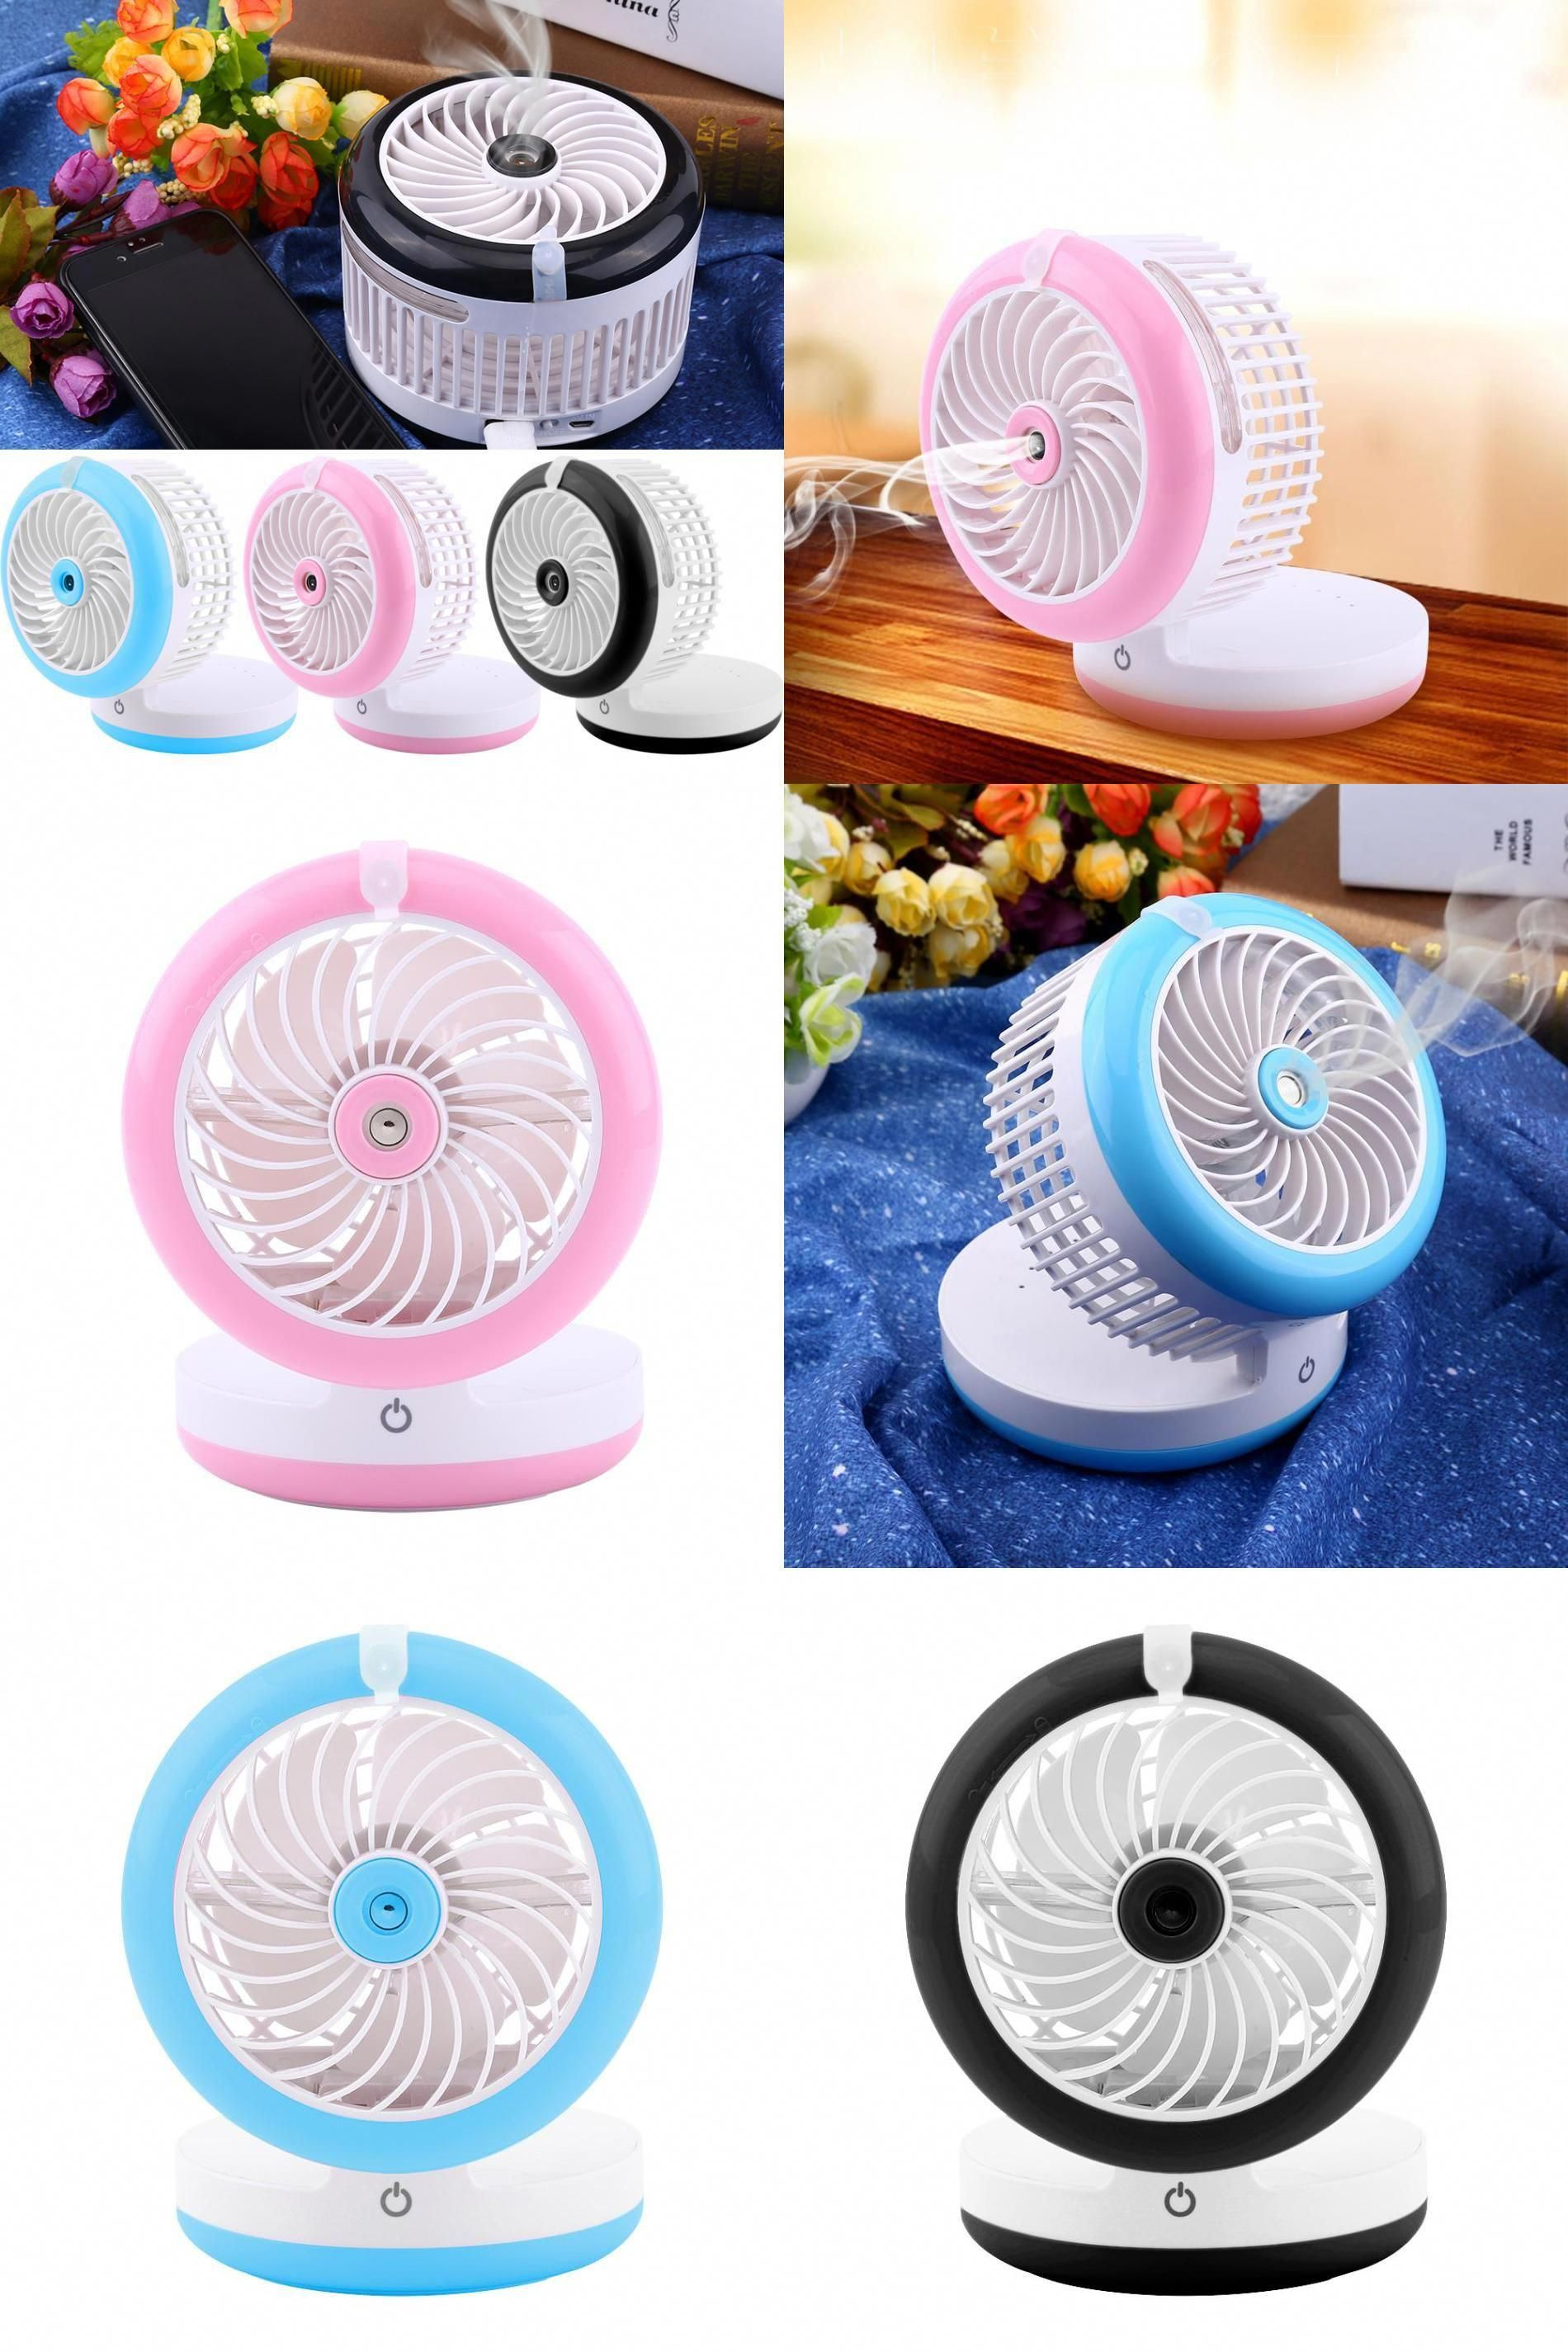 HomeAppliancesExhibition Misting fan, Portable air